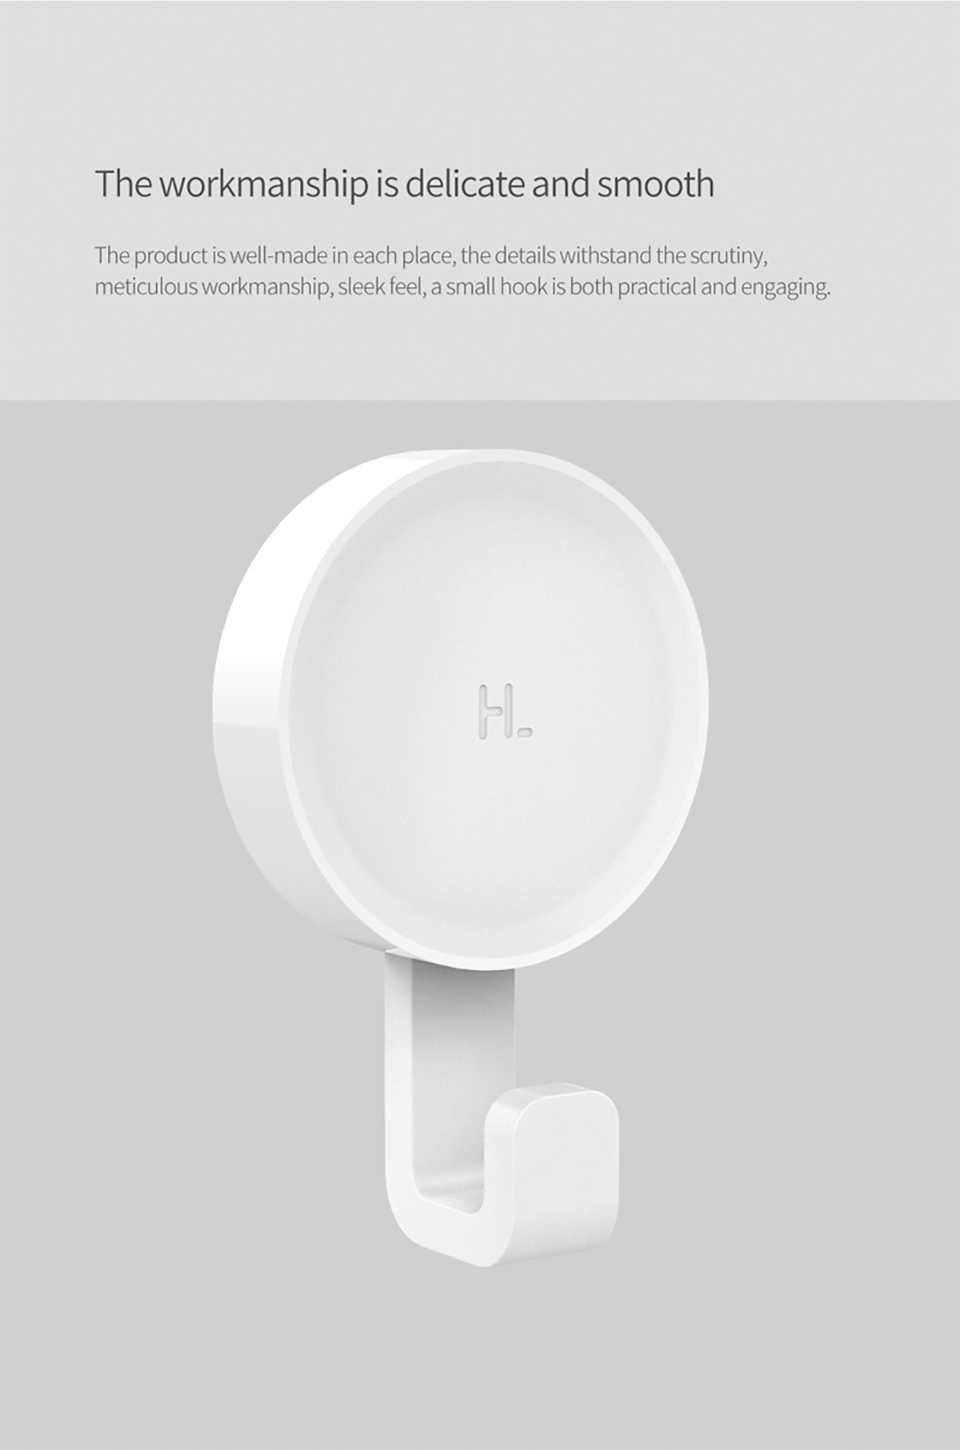 Xiaomi Mijia Little Adhesive Hooks Strong Bathroom Bedroom Kitchen Wall Hooks 3kg Max Load up new arrival in Stock (5)